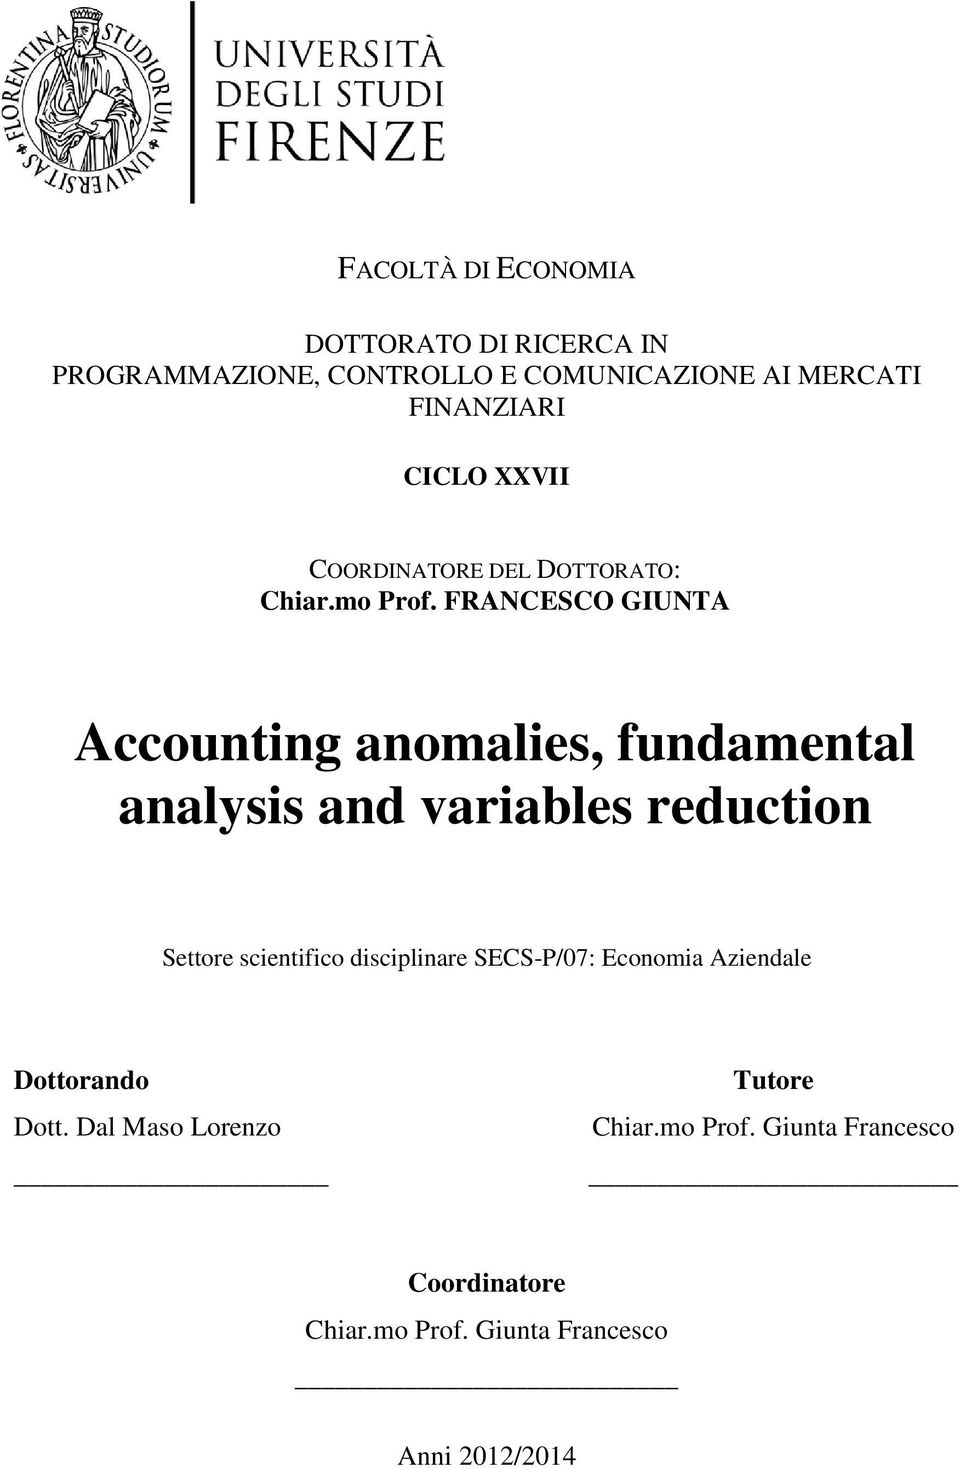 FRANCESCO GIUNTA Accounting anomalies, fundamental analysis and variables reduction Settore scientifico